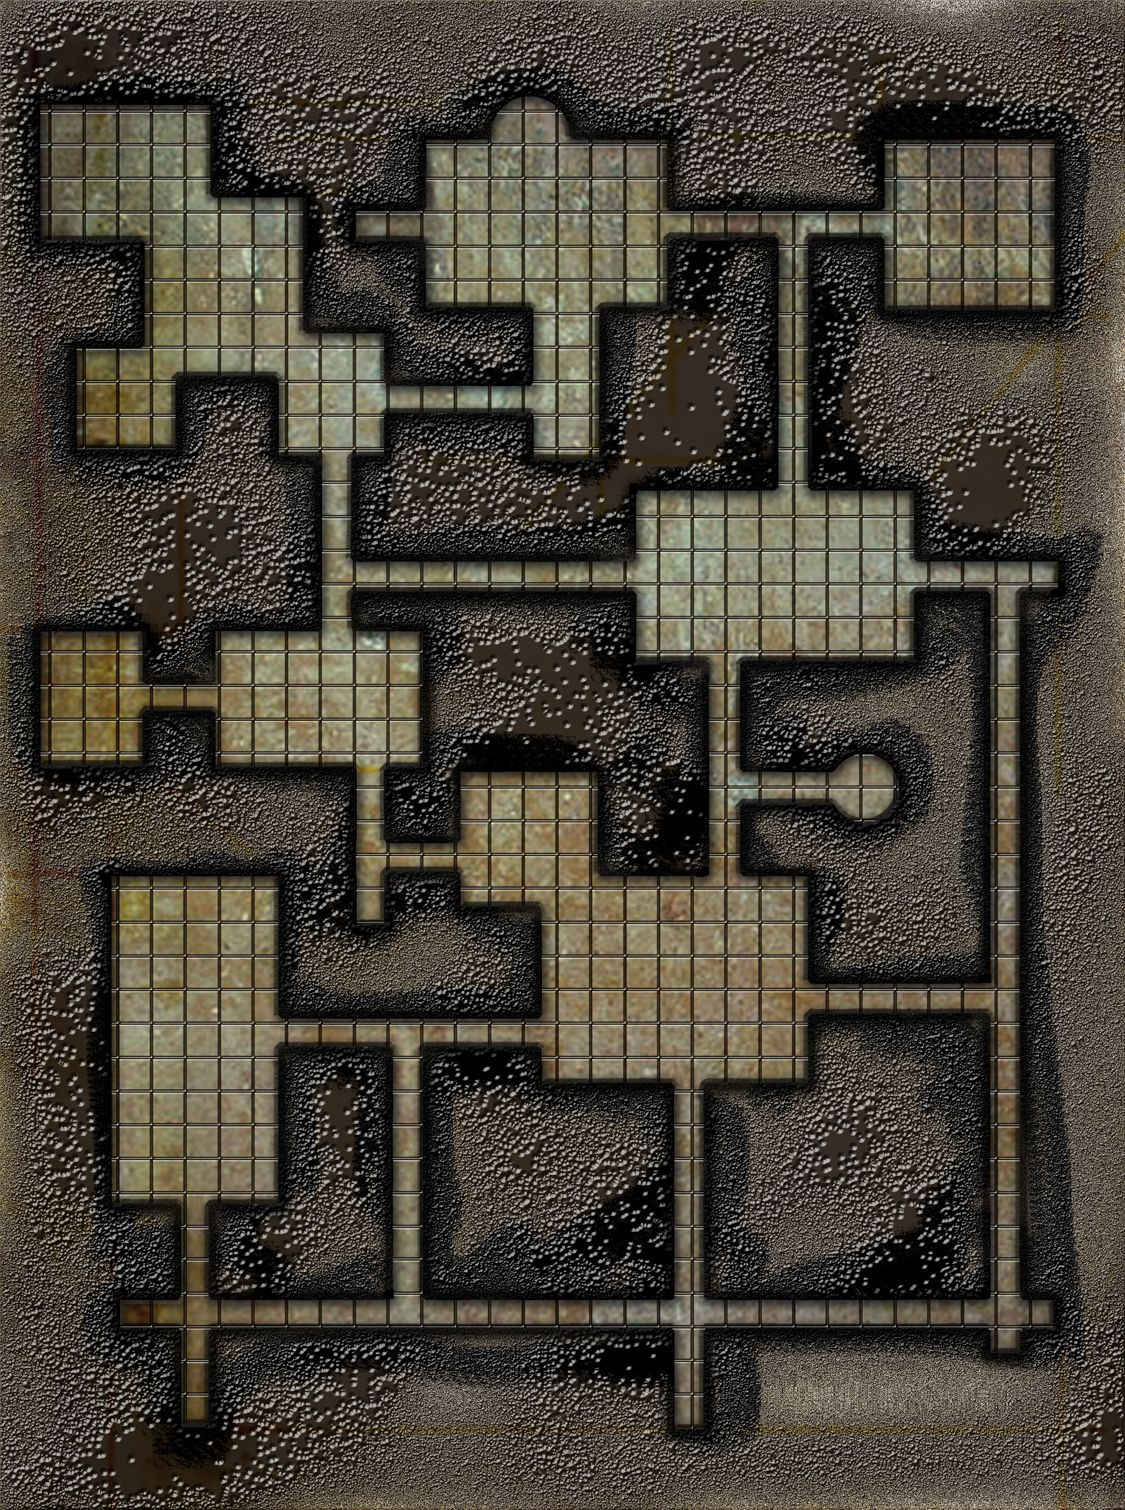 Http://www.wizards.com/dnd/images/mapofweek/02catswerdng